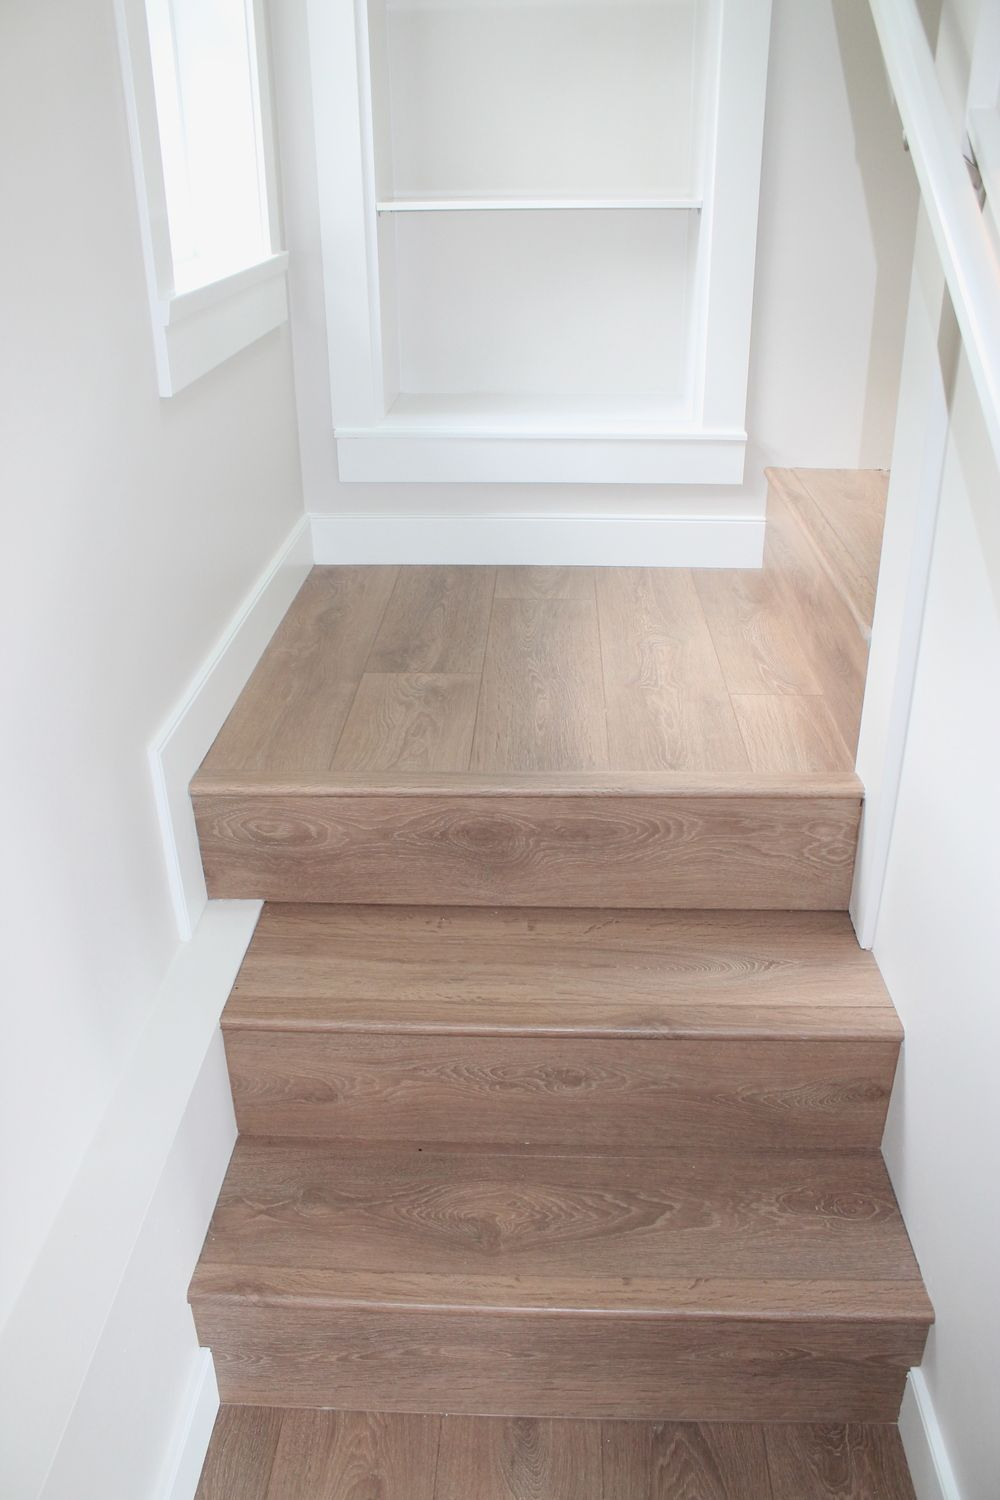 installing laminate flooring on stairs cost gurus floor. Black Bedroom Furniture Sets. Home Design Ideas